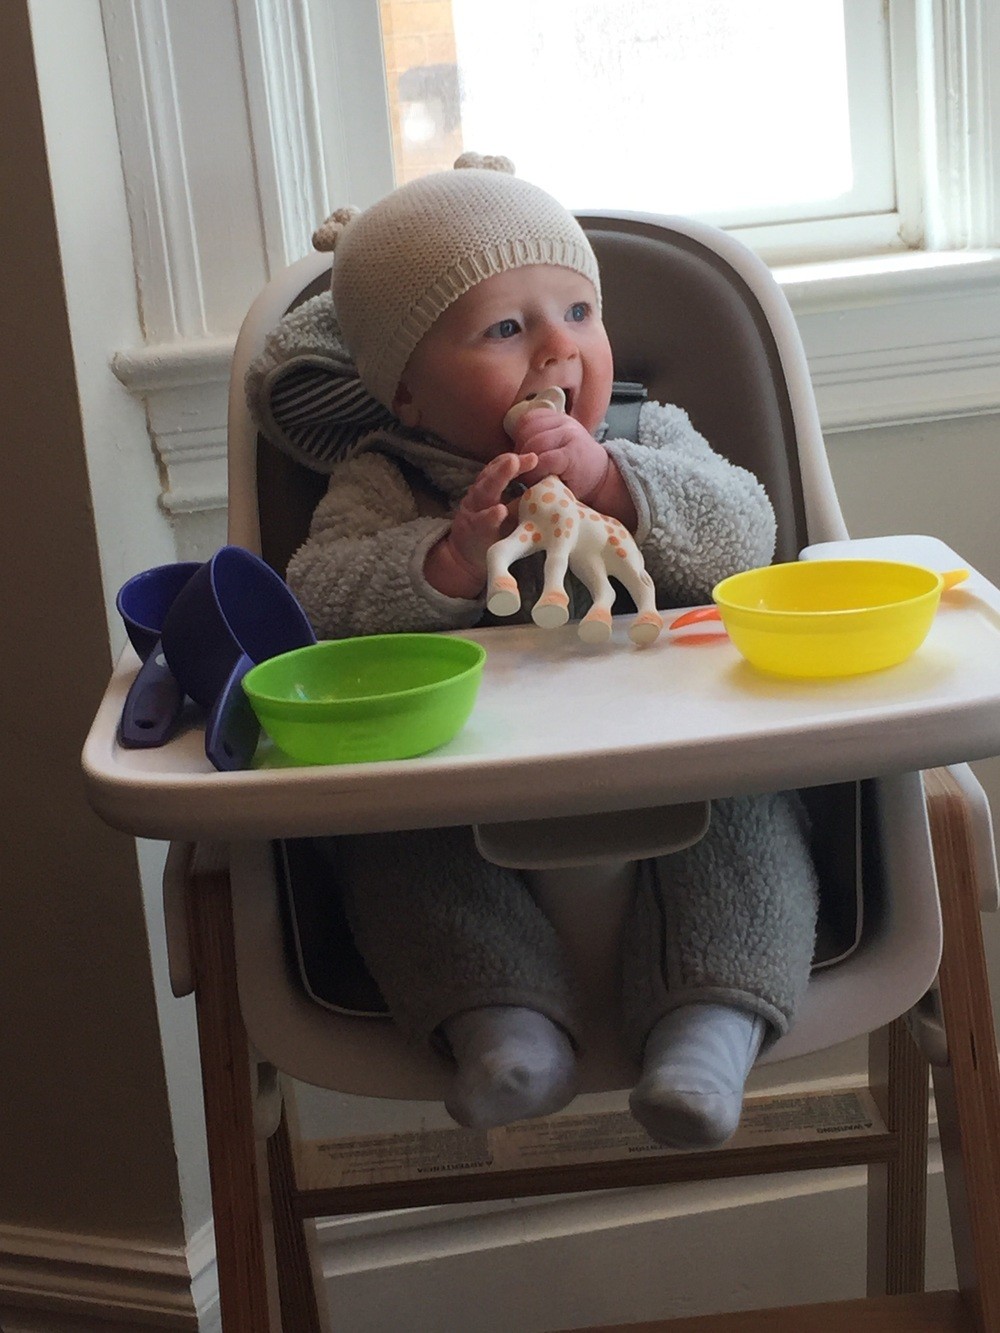 As a sidenote: out heat went out the day this was taken. He doesn't always sit in his high chair in full winter attire.